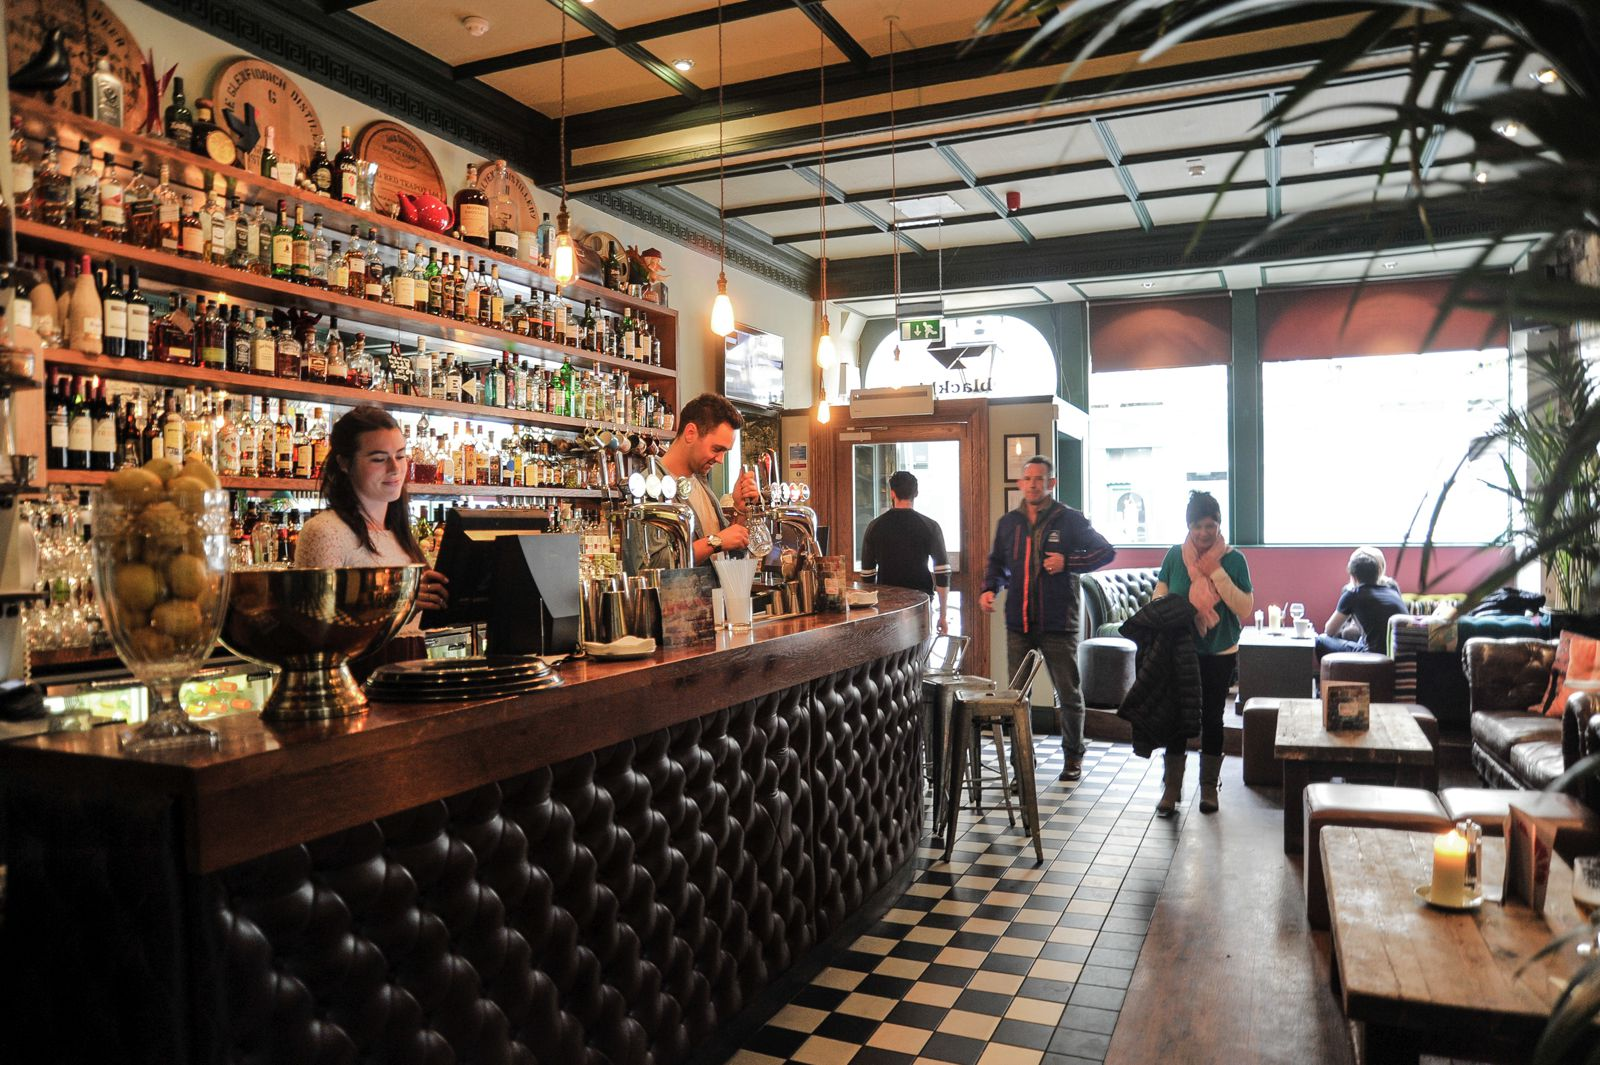 11 fantastic bars to visit in edinburgh hand luggage for Cool bar pictures